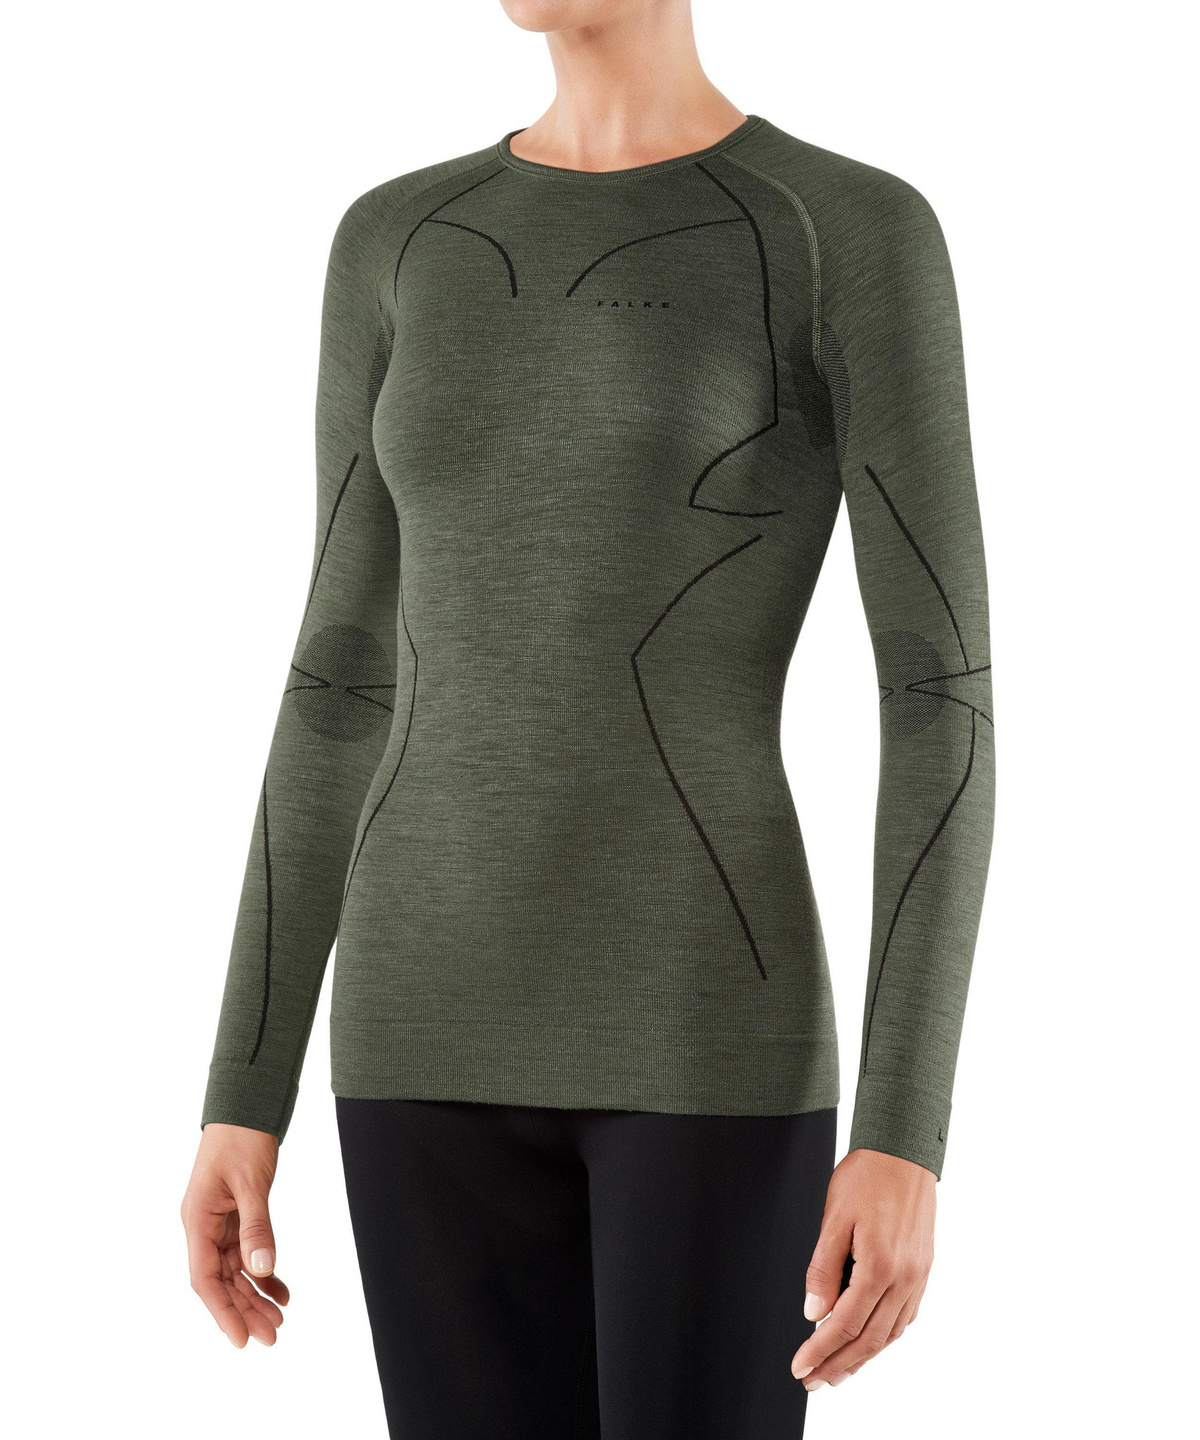 Multiple Colours 1 Piece quick dry FALKE Womens Wool Tech Merino Wool Blend For hiking ski trekking Short Sleeve Base Layer Top snowboarding: warm breathable Sizes XS-XL